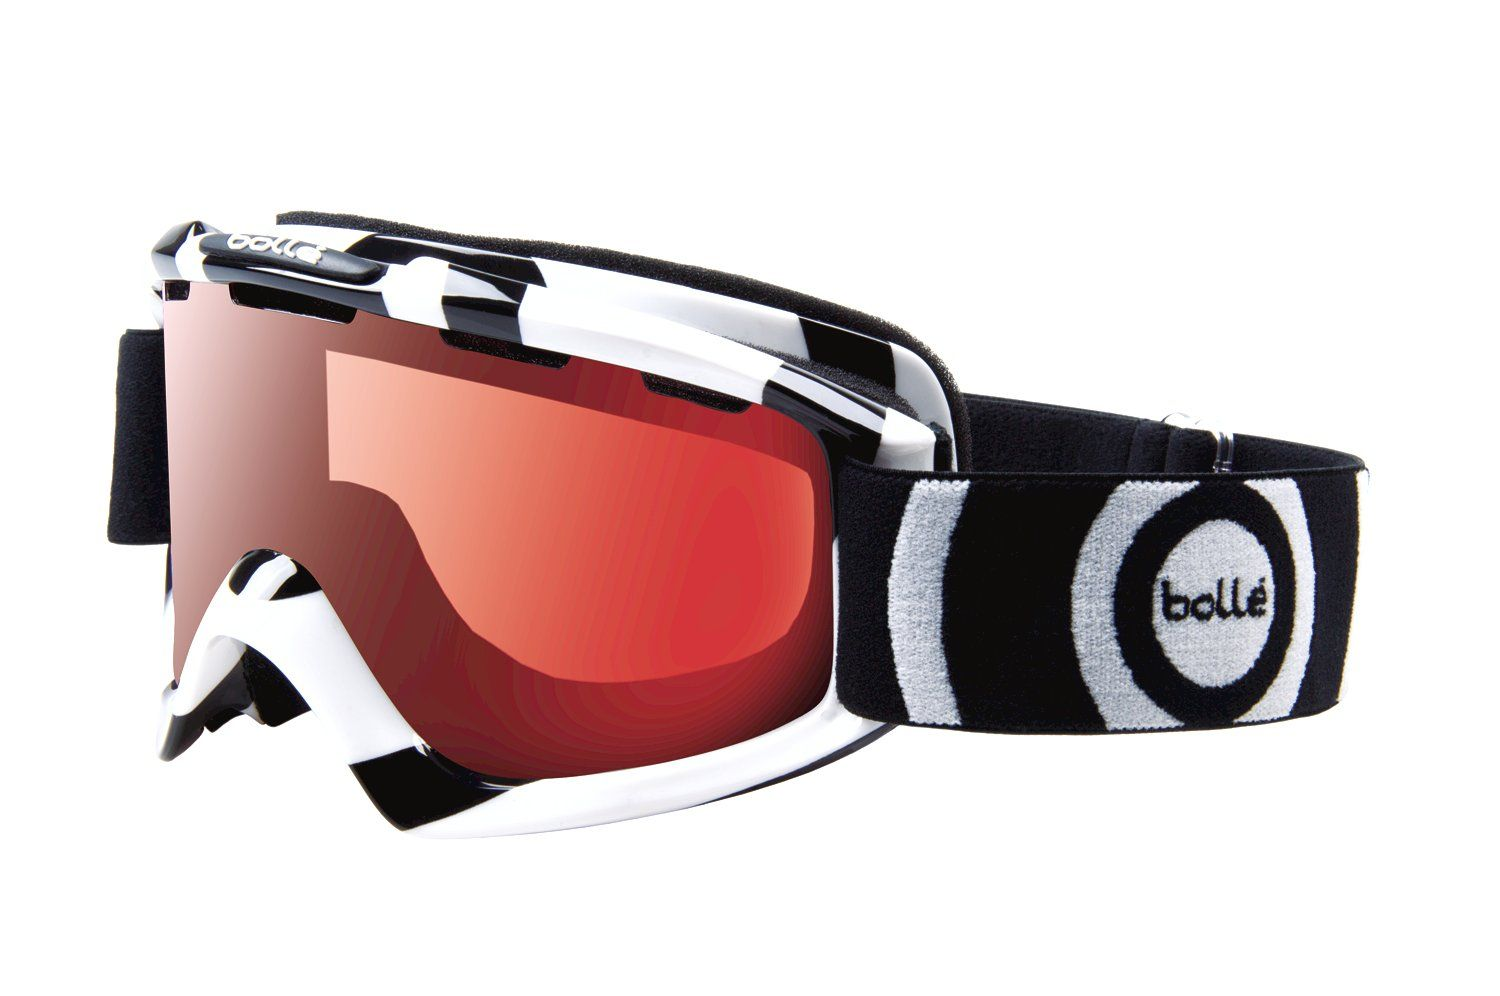 Nova Goggles from Bolle. Follow the link to our Advent